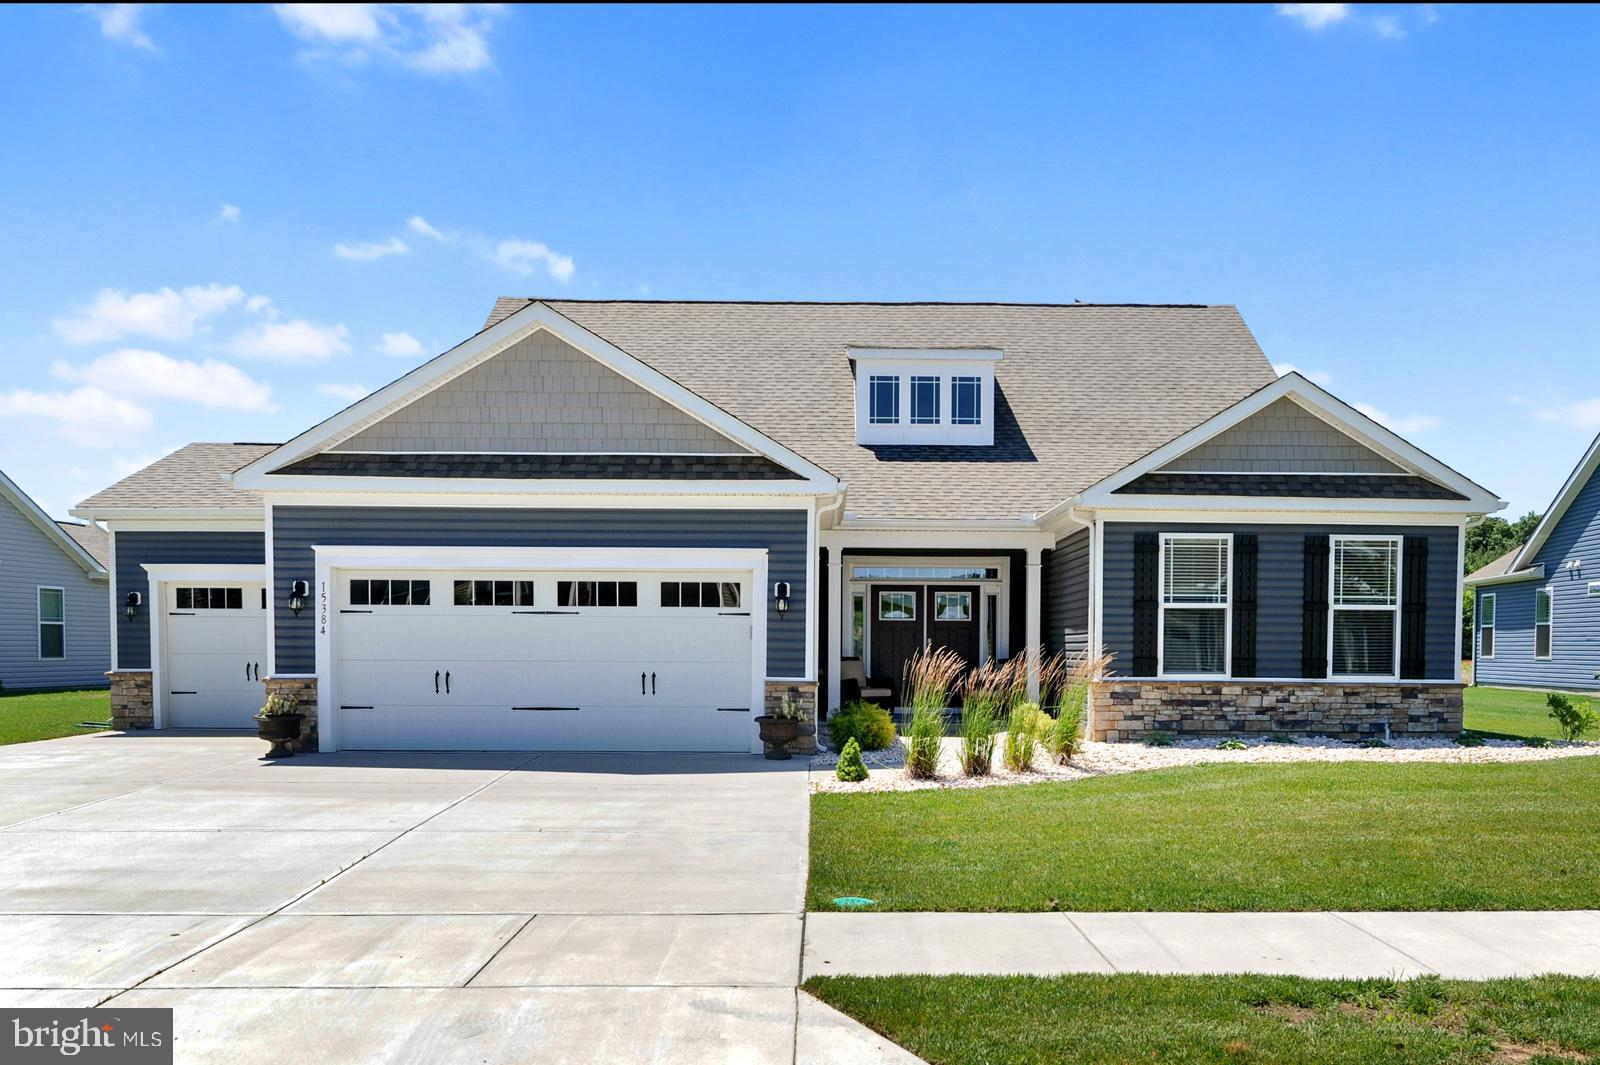 This coastal oasis is awaiting your arrival...  As you cross the threshold, you will notice the attention to detail with elegant finishes, upgraded trimwork, and an abundance of wainscoting.  The first floor features a gourmet kitchen including gleaming quartz counter tops, stainless appliance package and an abundance of workspace,  a great room that is filled with natural light with amazing pond views,  and a primary suite with luxury bath including oversized tiled shower and spacious walk-in closet,  The entry level also includes two additional bedrooms with a shared full bath and  additional 1/2 bath.  On the upper level you will find two generous bedrooms and another shared bath in neutral decor and lightly used.  Some of the additional upgrades include a 3 car garage, fenced rear yard, irrigation with dedicated well, custom lighting fixtures, and expanded patio with covered porch.  This home is better than new and will not last long.  Schedule your tour today!